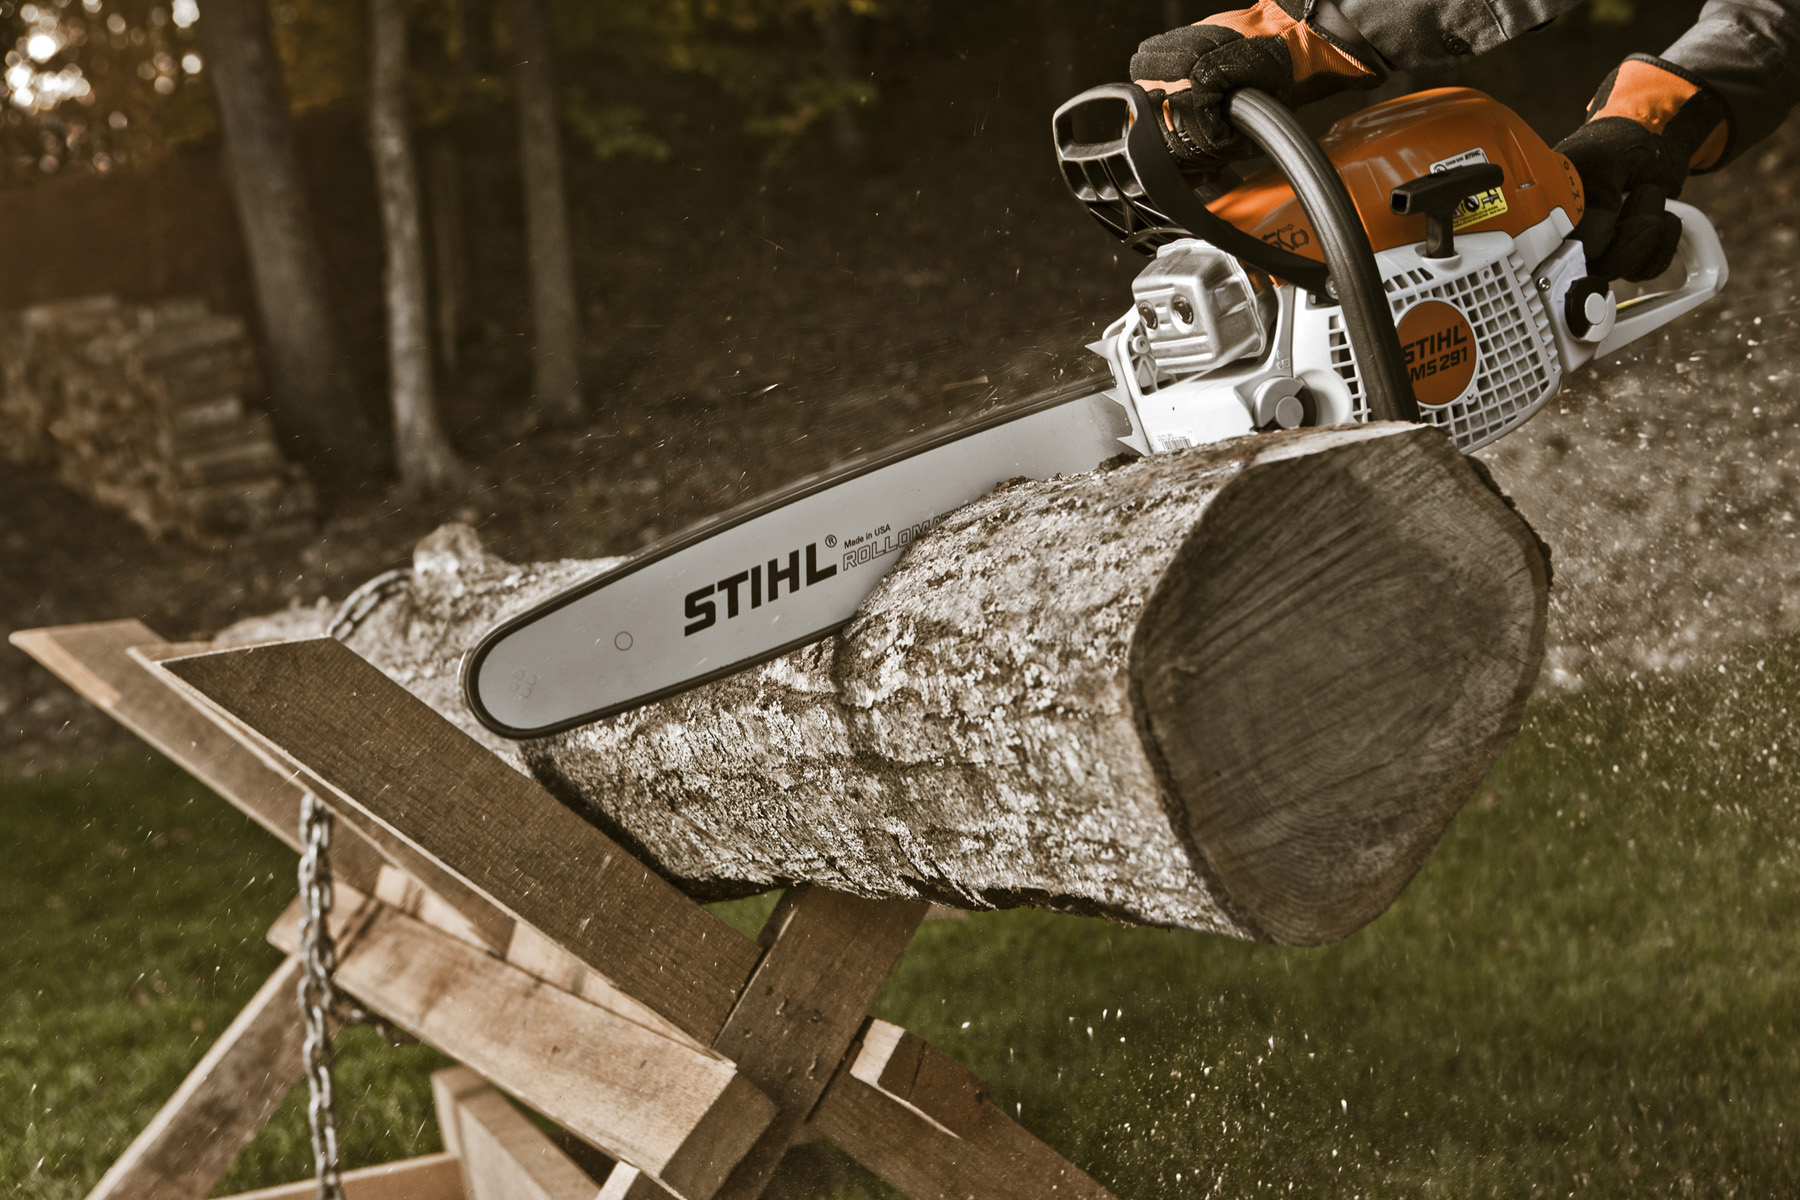 stihl chainsaws farm boss. farm boss saw. 16 - 20 inch chainsaw stihl chainsaws